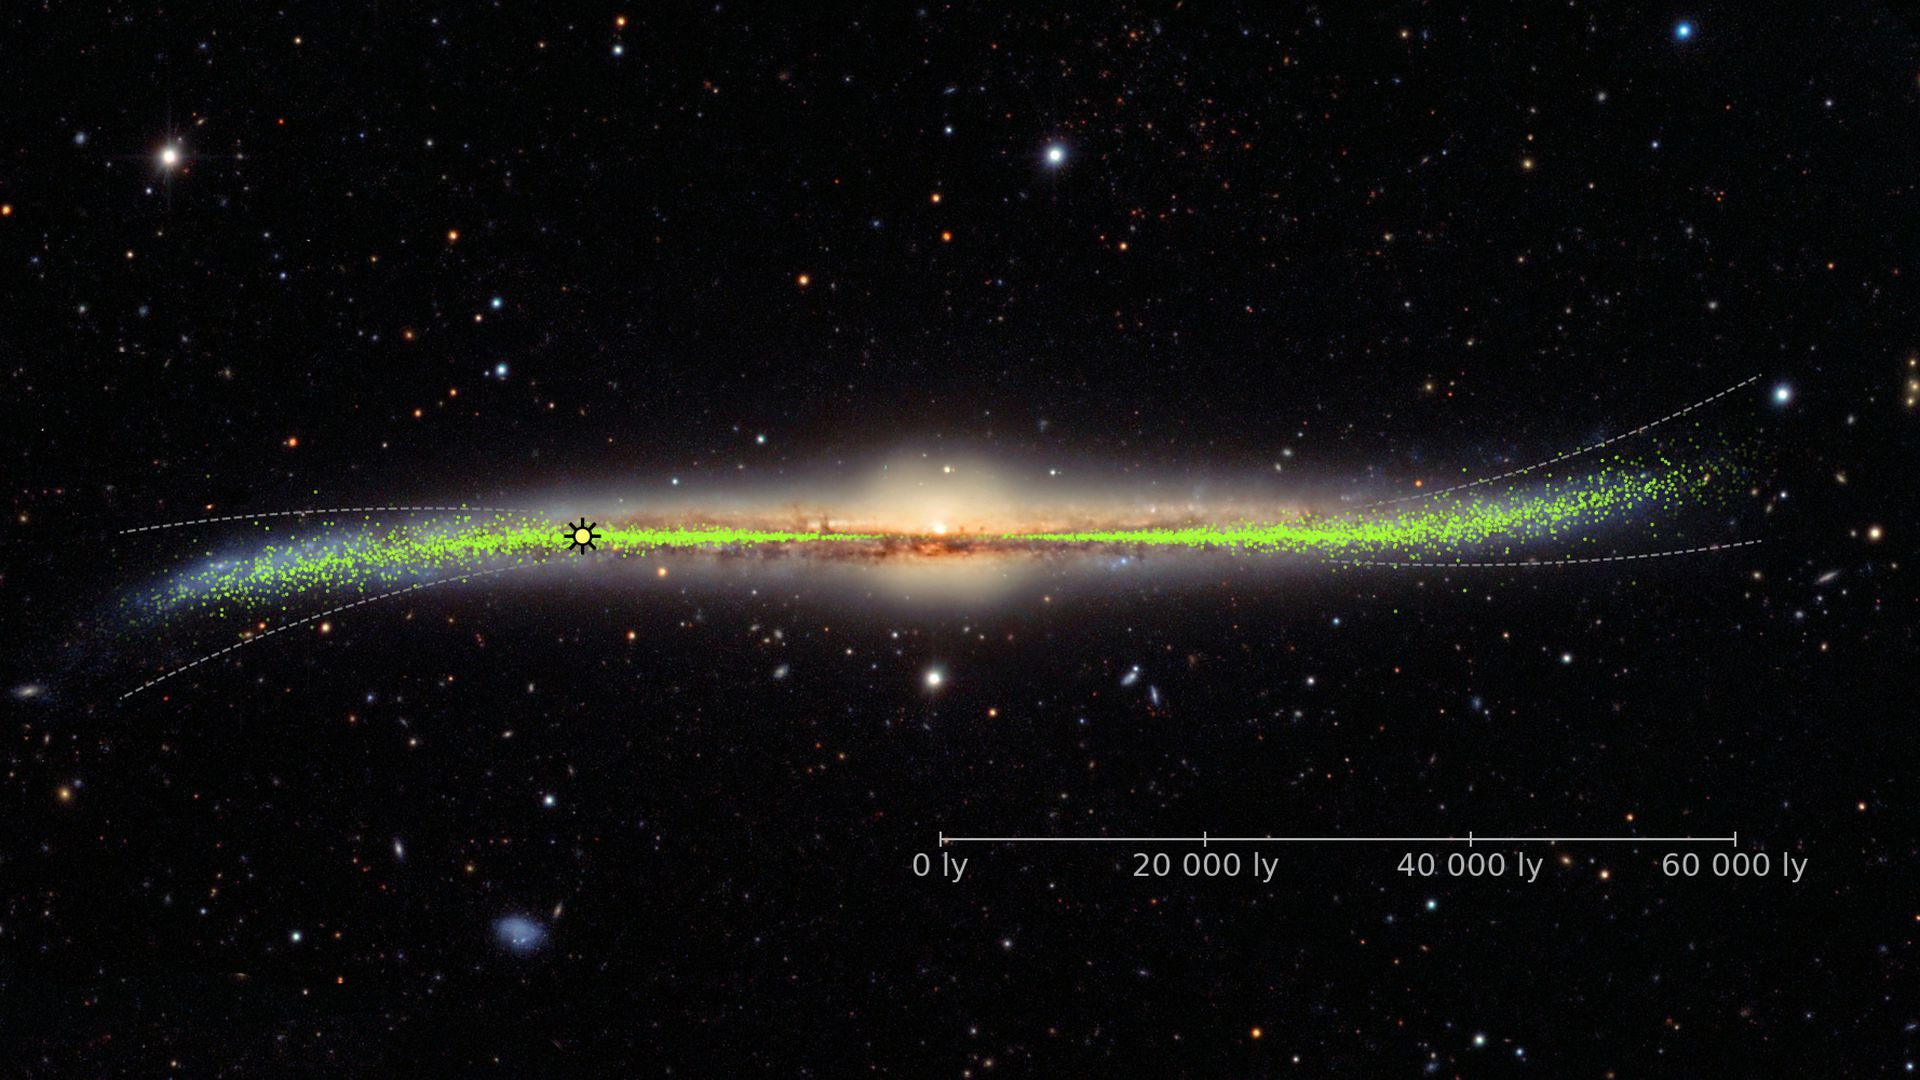 Warped galaxy with the distribution of young stars (Cepheids) in its disk as inferred from the Milky Way Cepheids.